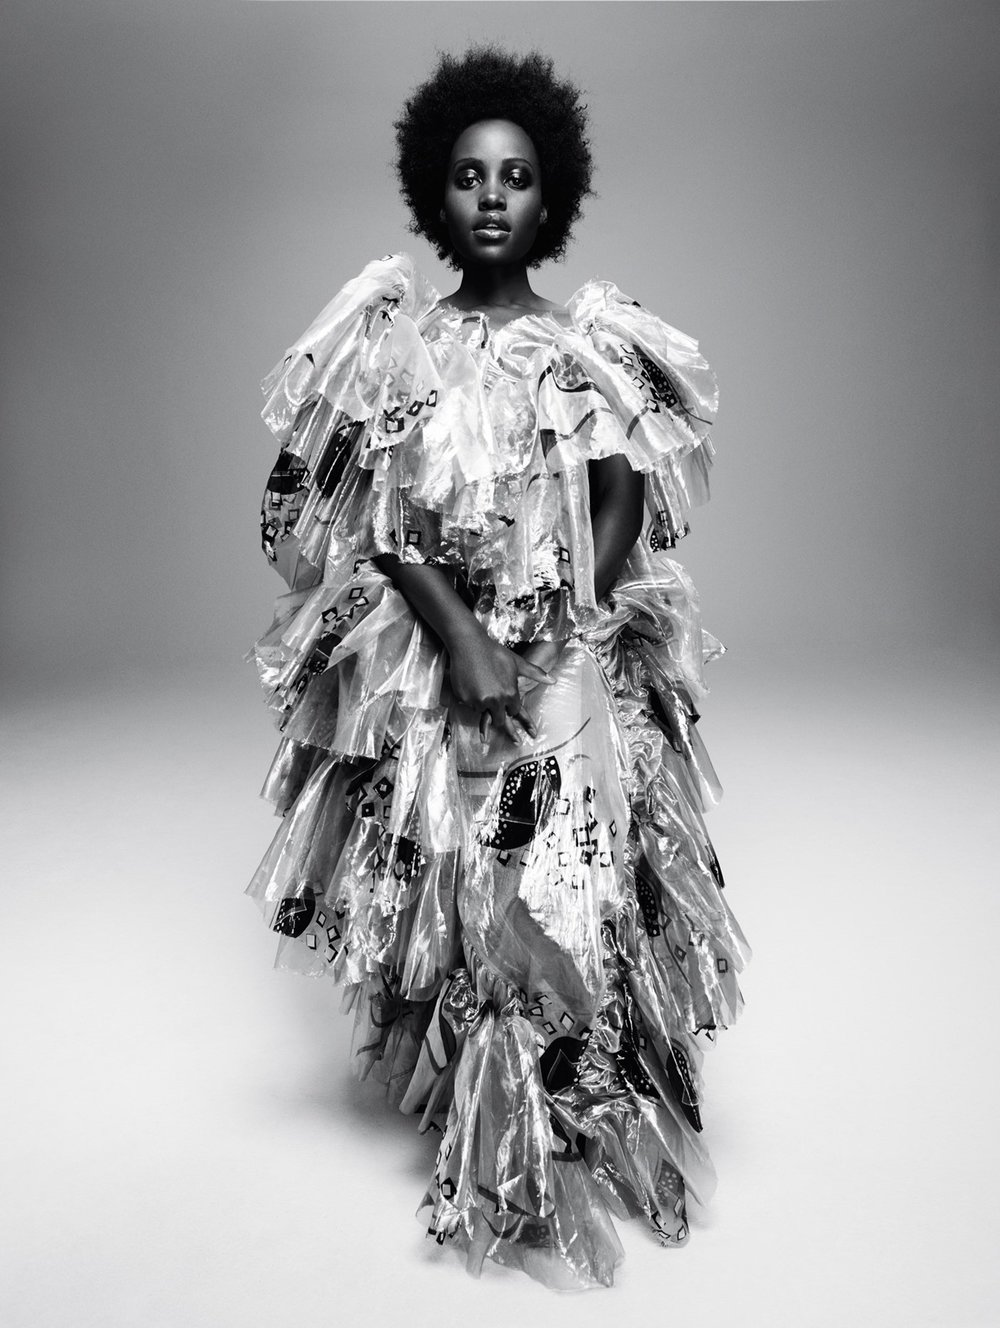 - Printed and glazed silk ruffle gown by Andreas Kronthaler for Vivienne Westwood